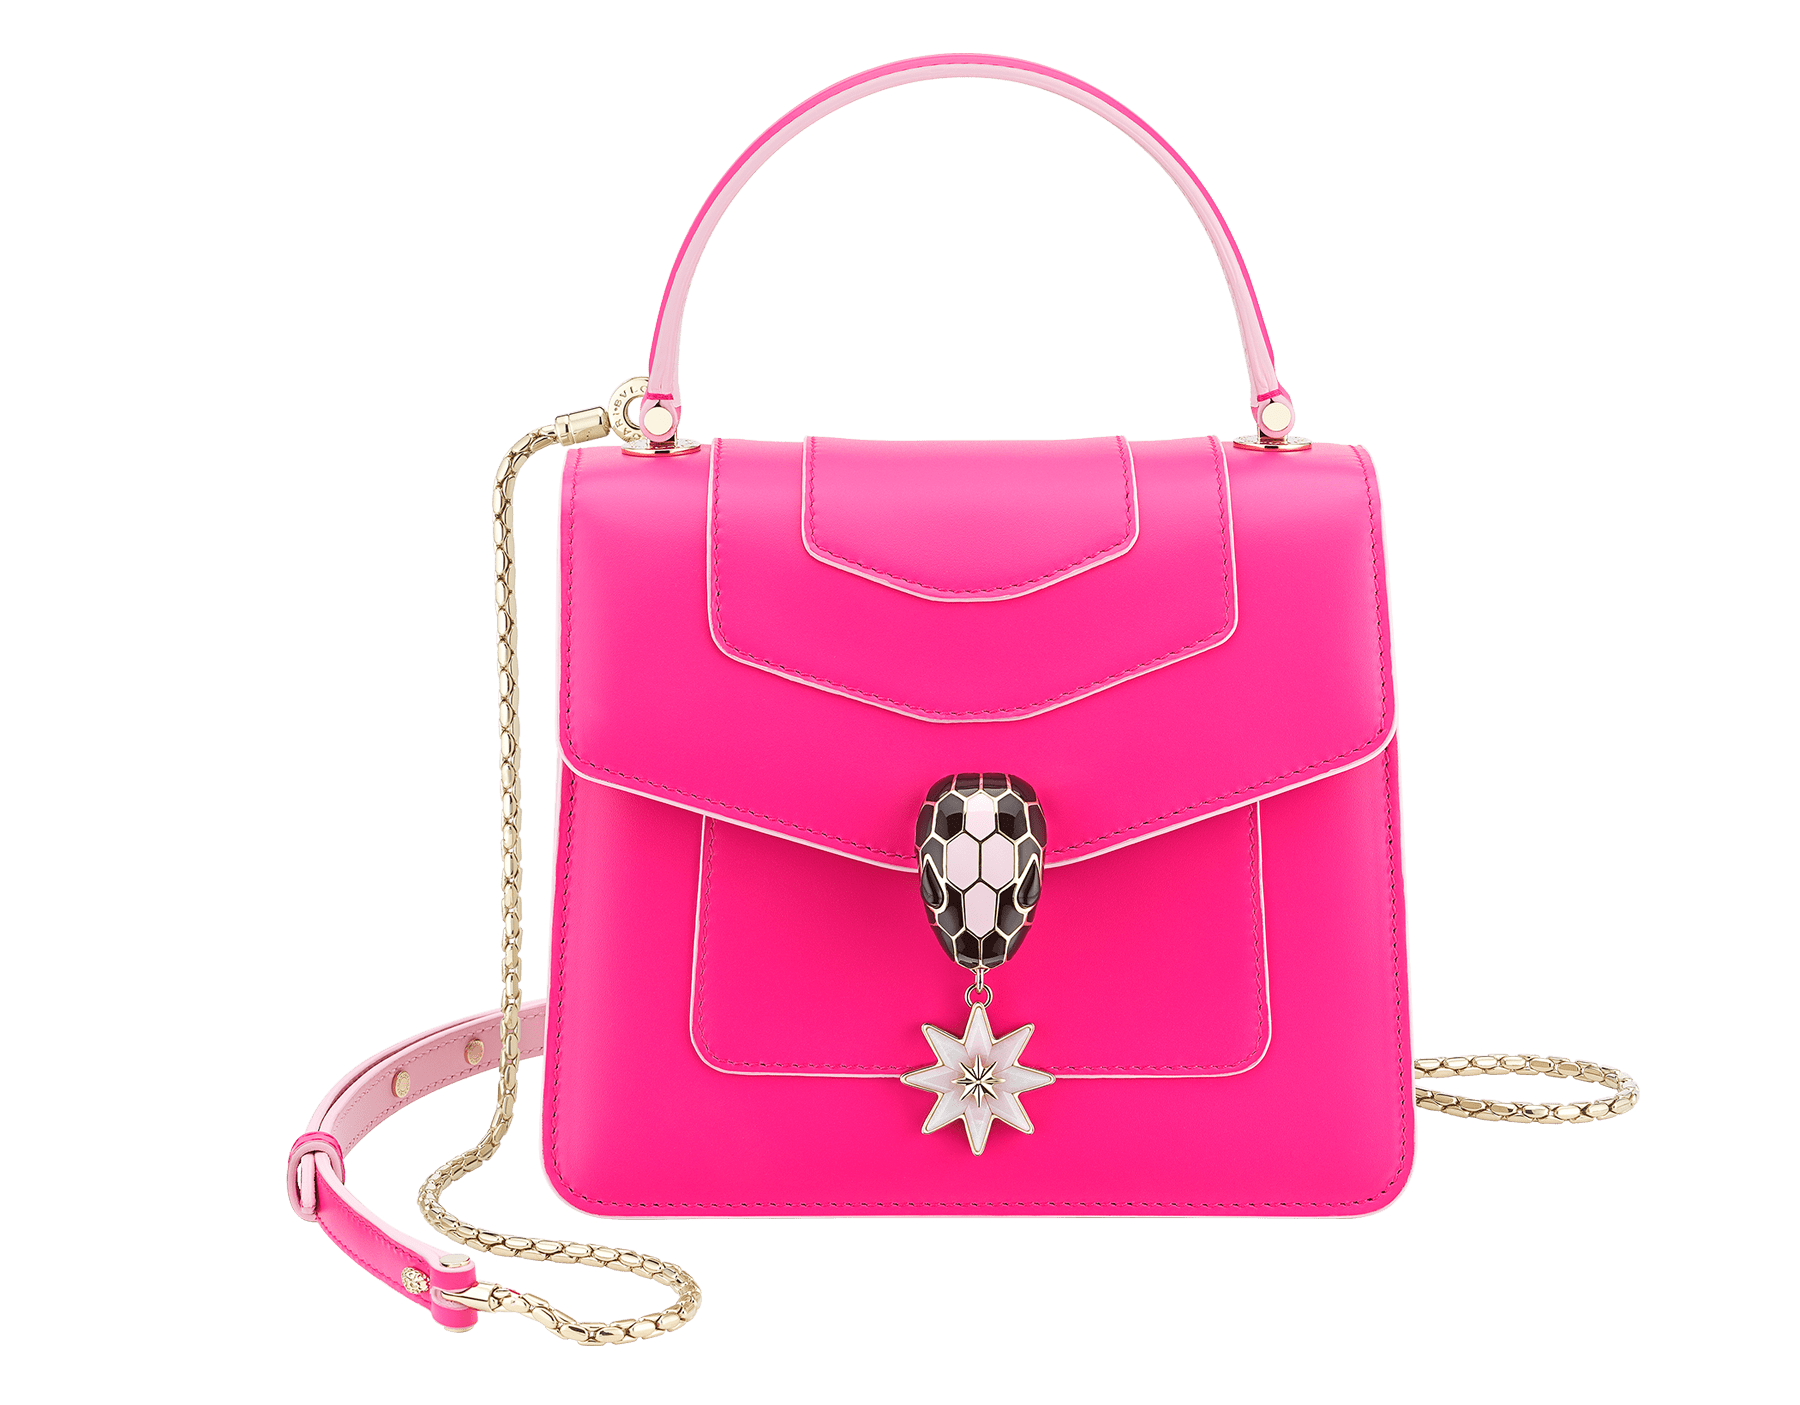 Serpenti Forever Holiday Season crossbody bag in flash amethyst, rose quartz brushed metallic and rosa di francia calf leather. Snakehead closure in light gold plated brass embellished with black and sakura pink enamel, black onyx eyes and a pink opal eight-pointed star charm. 289373 image 1